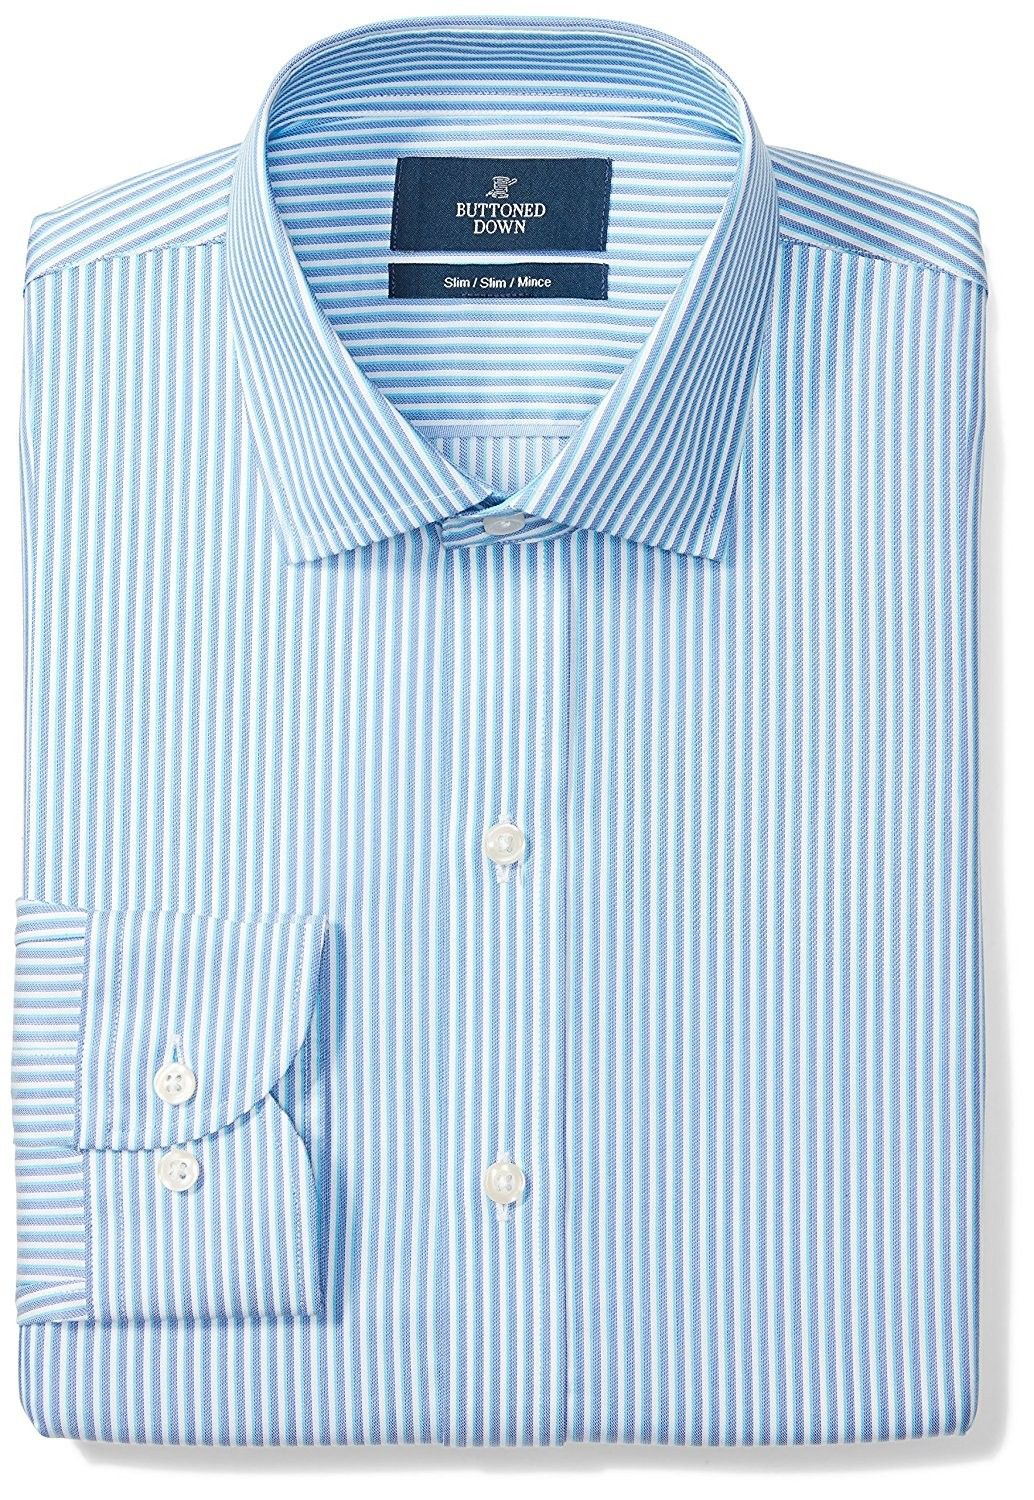 Mens Slim Fit Spread Collar Pattern Non Iron Dress Shirt Without